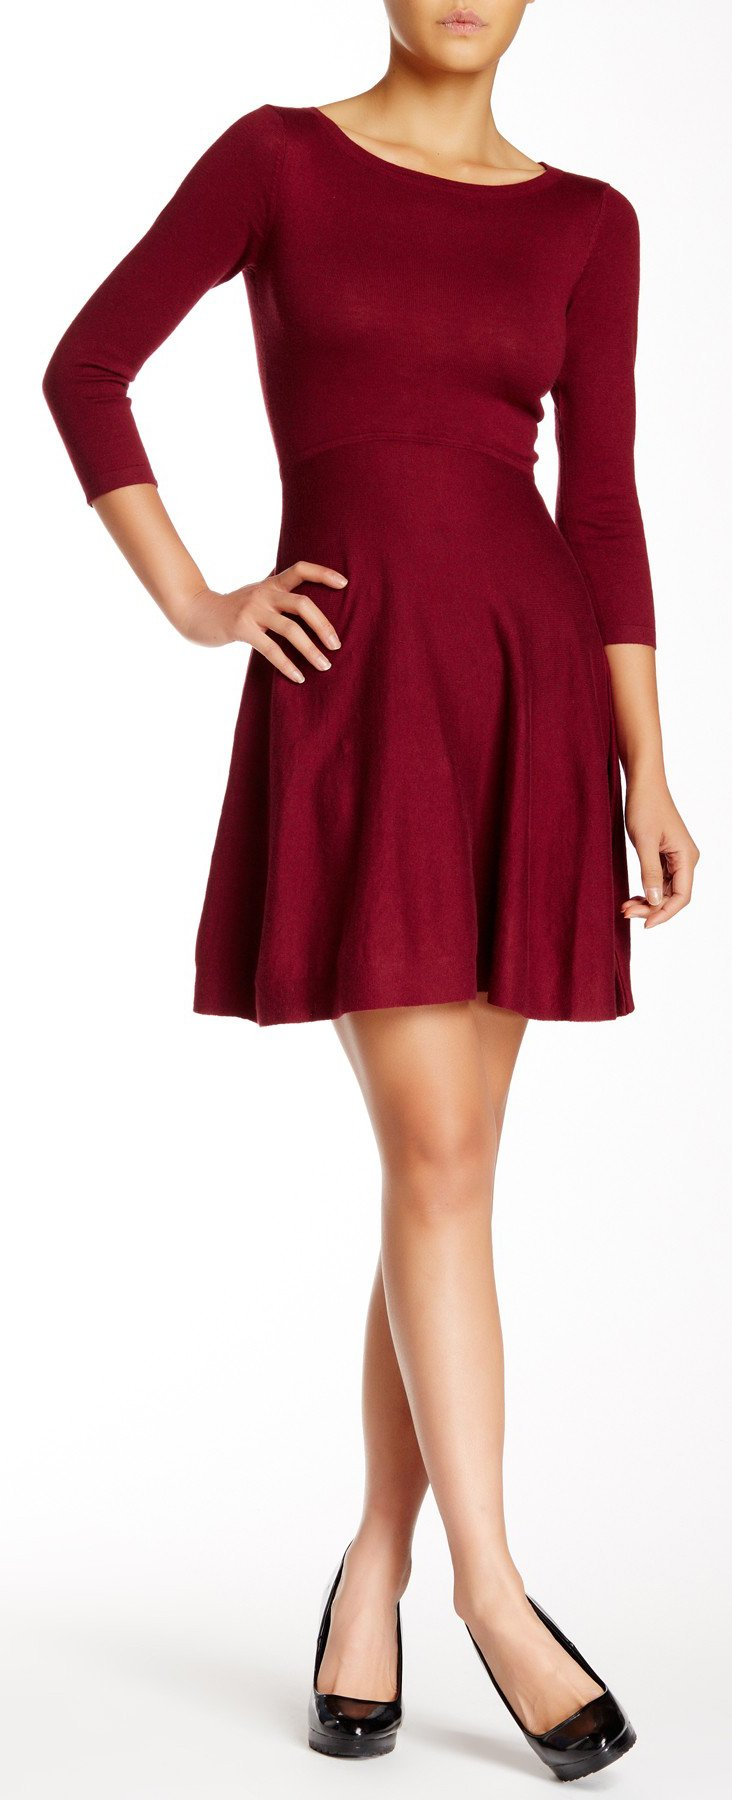 French Connection Women's Sydney Knits Solid Fit and Flare Dress, Burgundy, 2